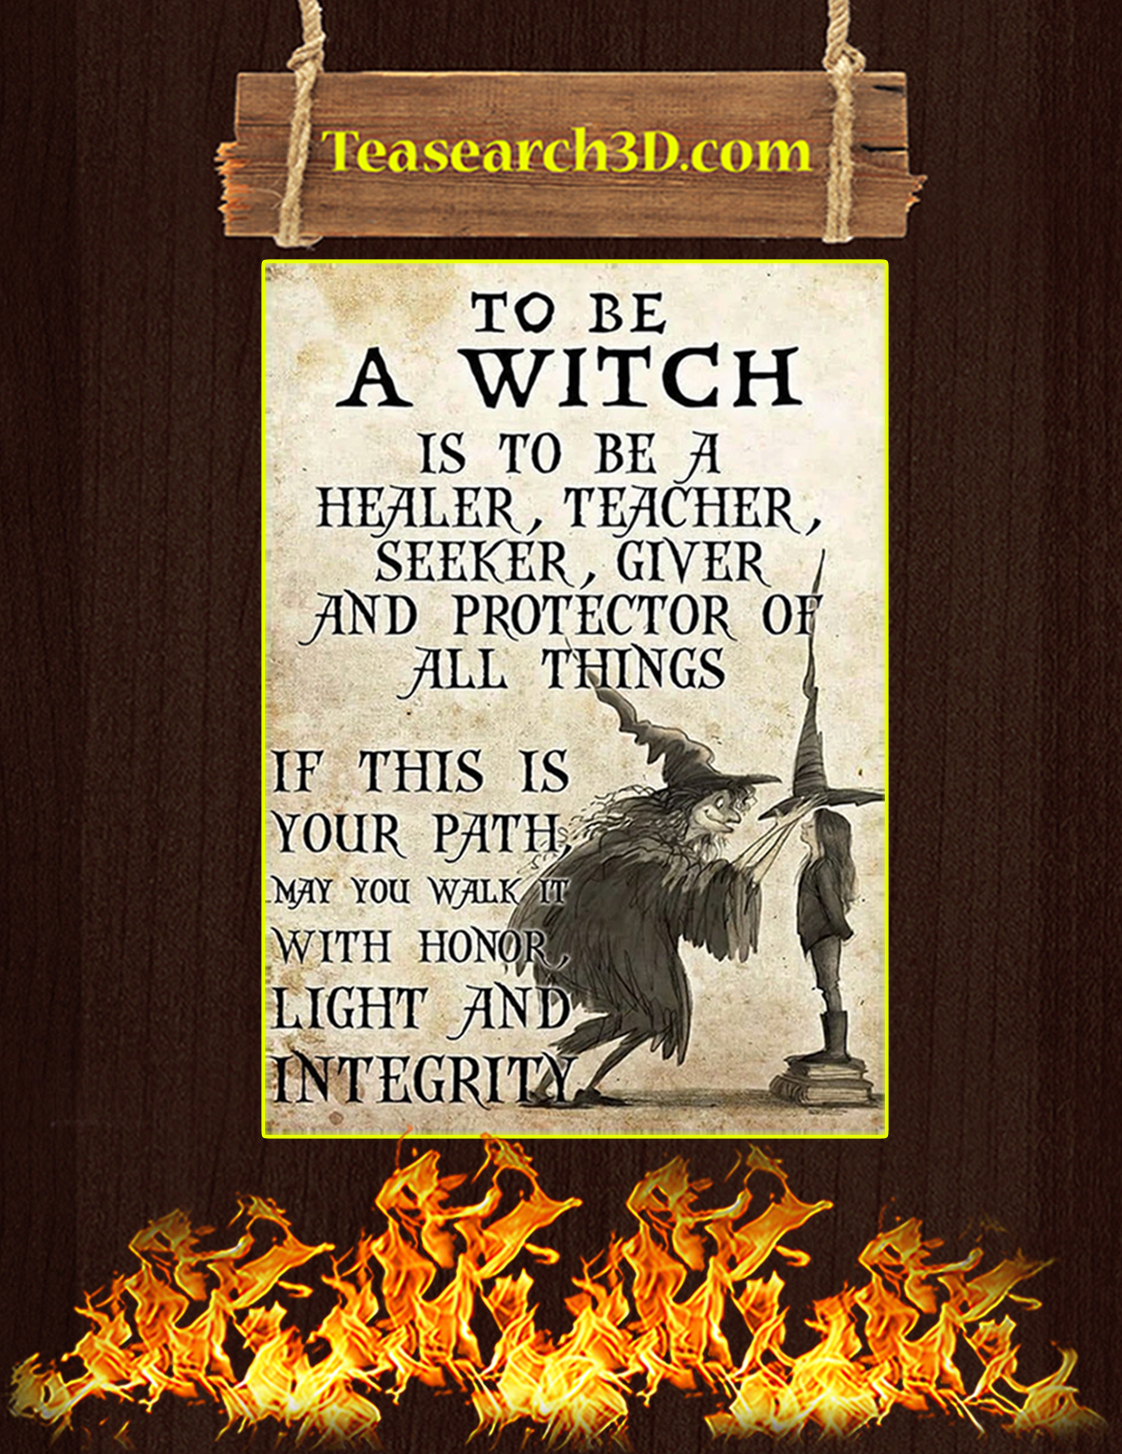 To be a witch is to be a healer teacher poster A3